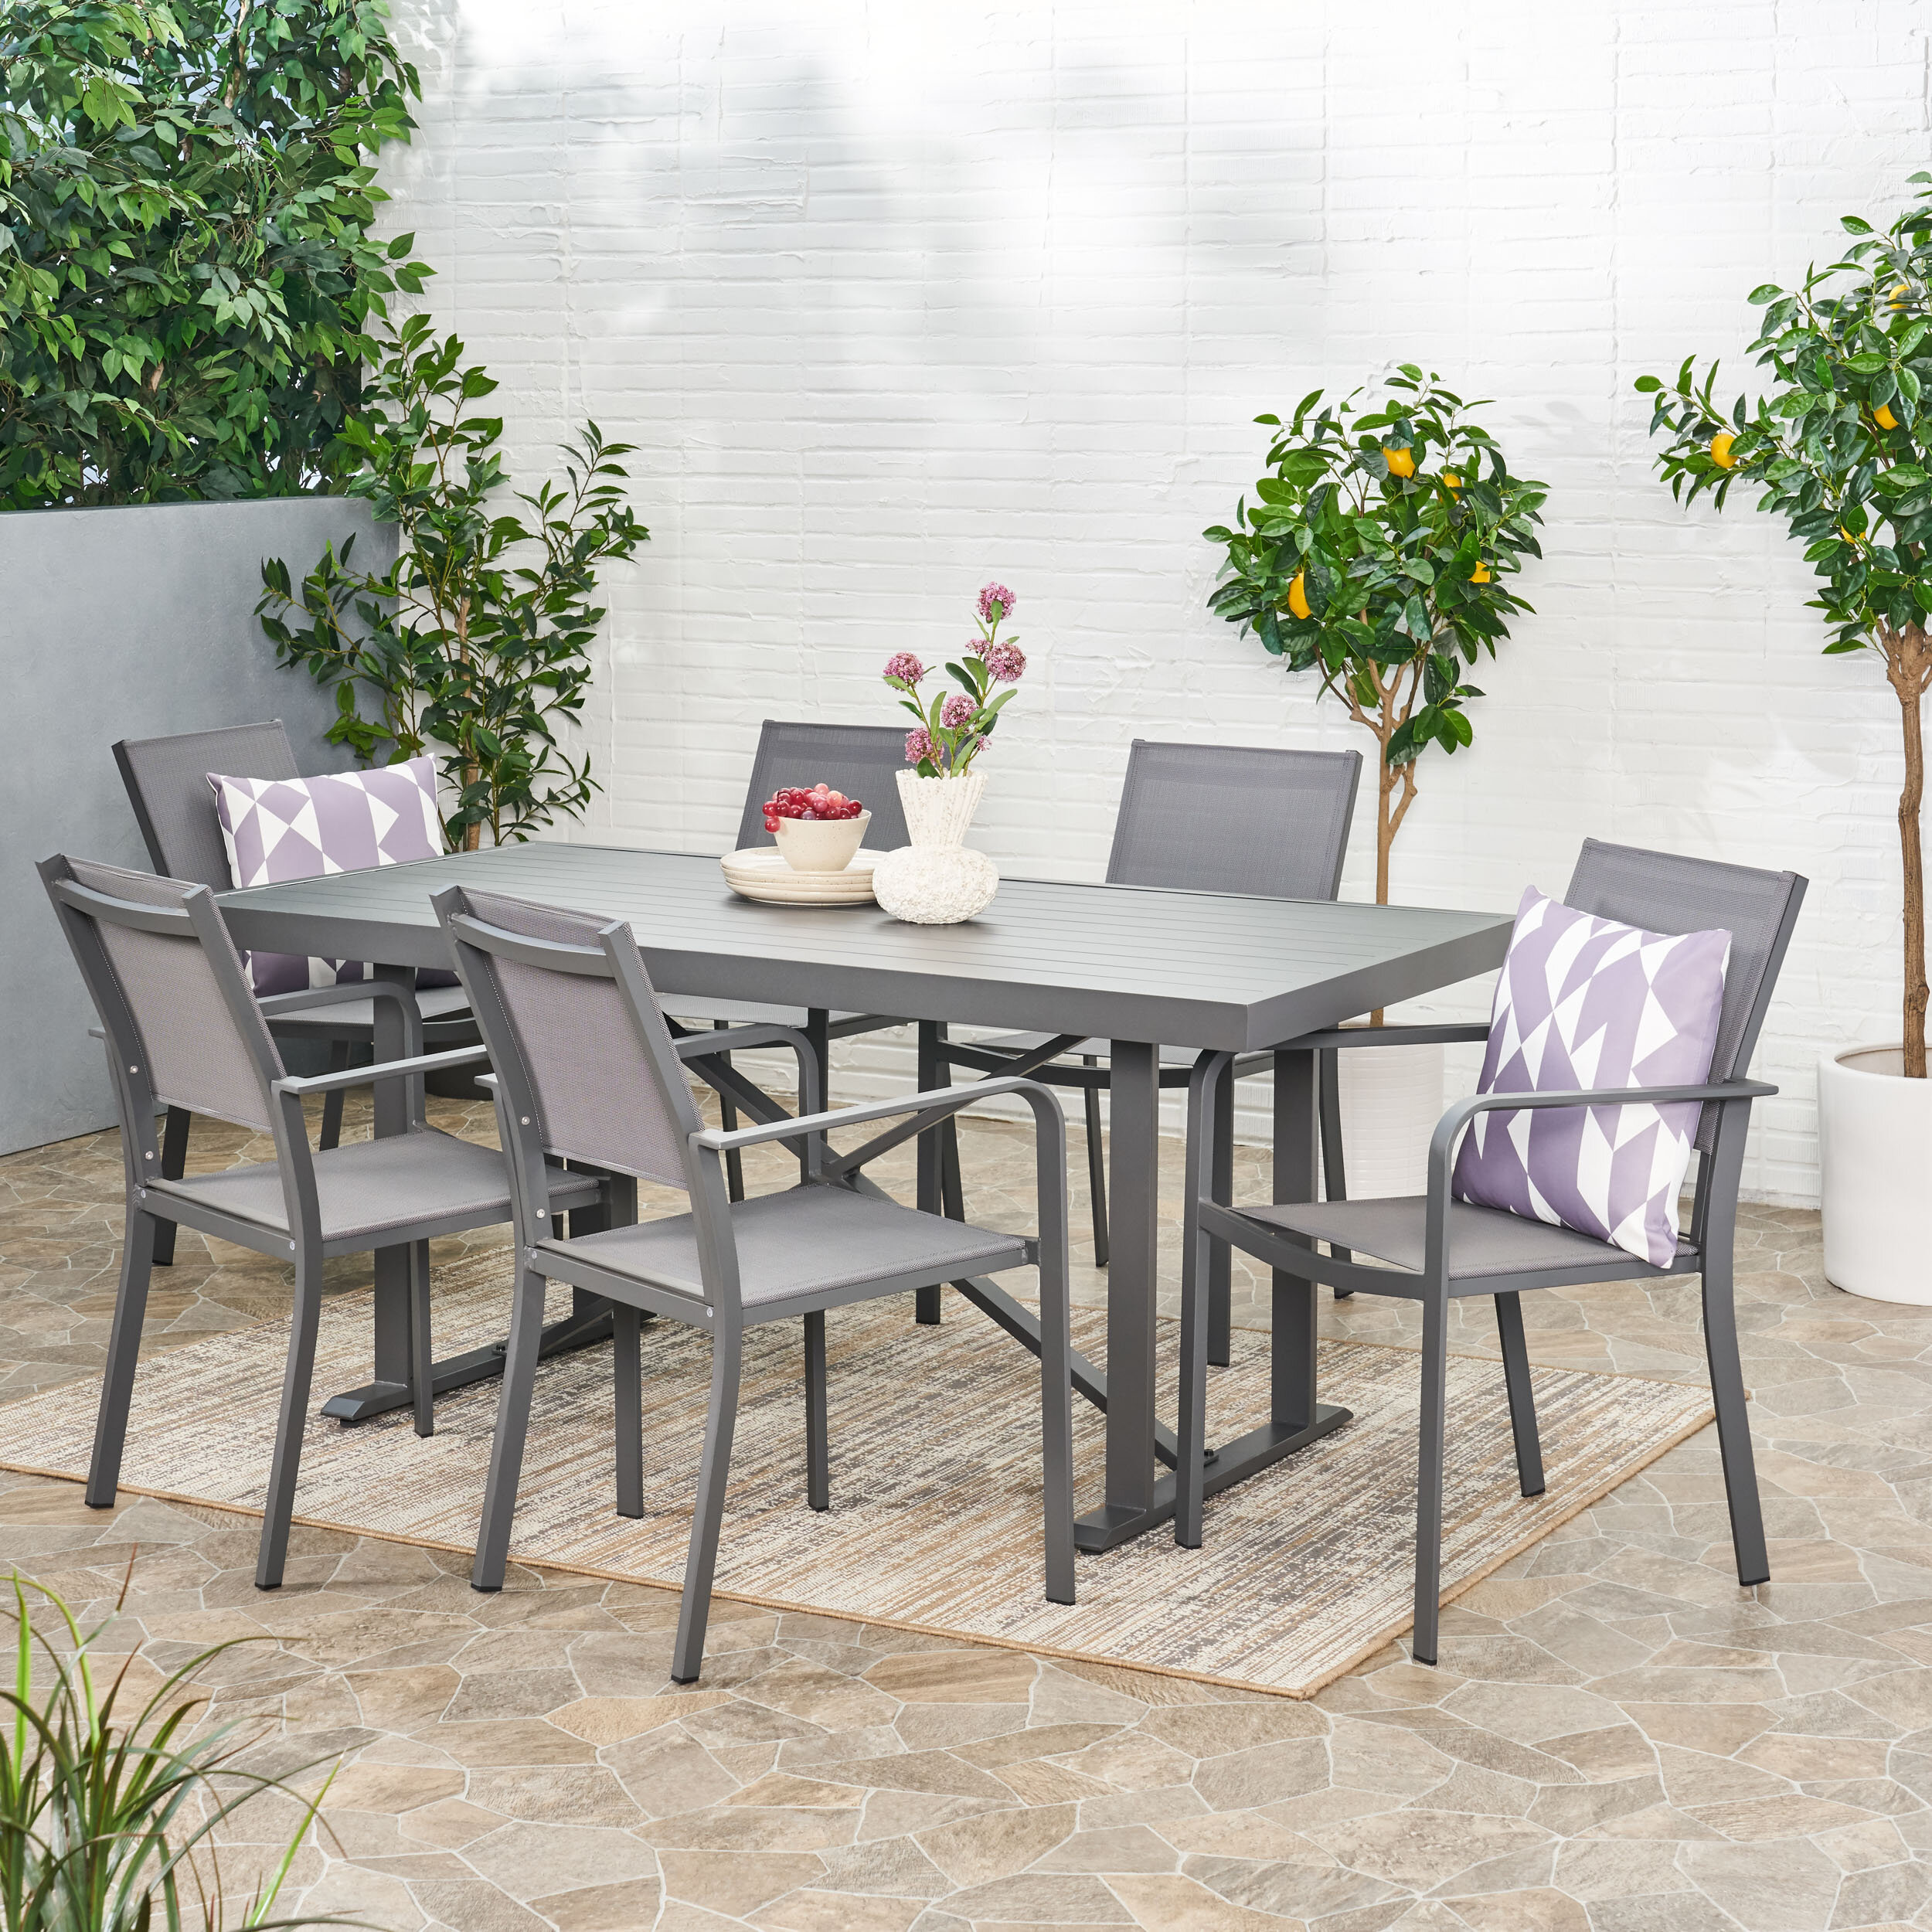 7 Piece Latitude Run Metal Patio Dining Sets You Ll Love In 2021 Wayfair